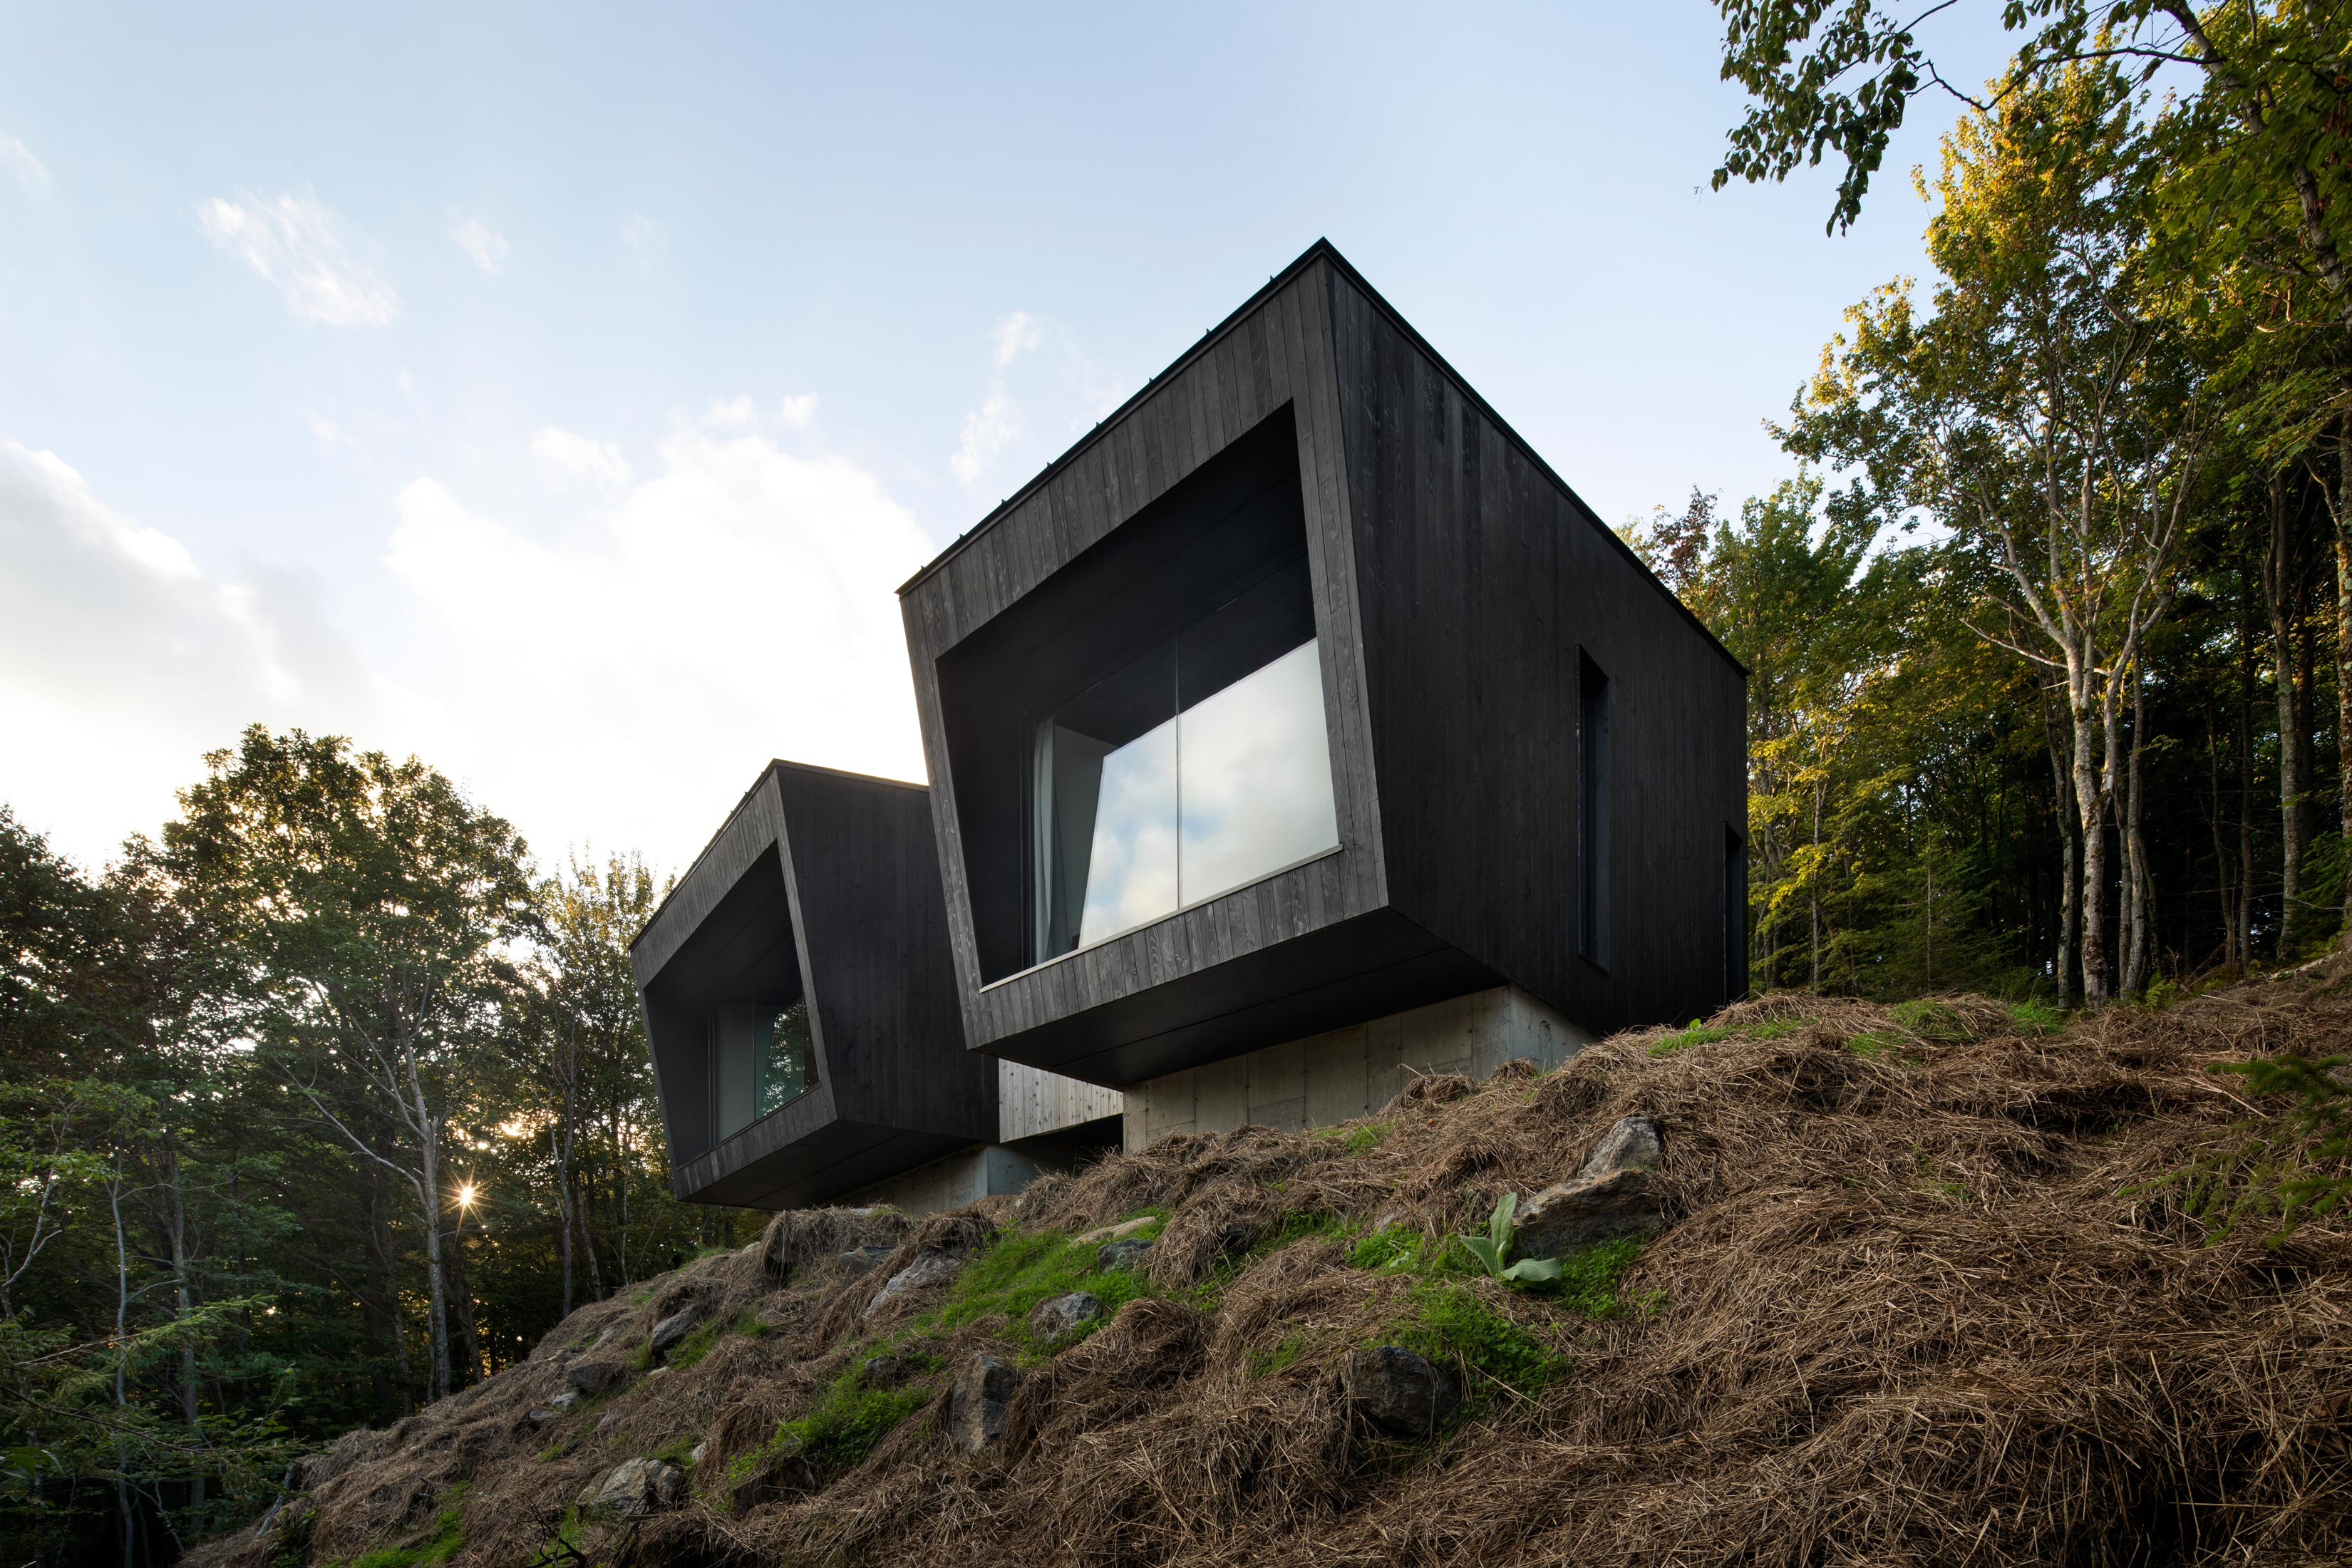 Mini Chalet En Bois cottages, country houses and cabins architecture